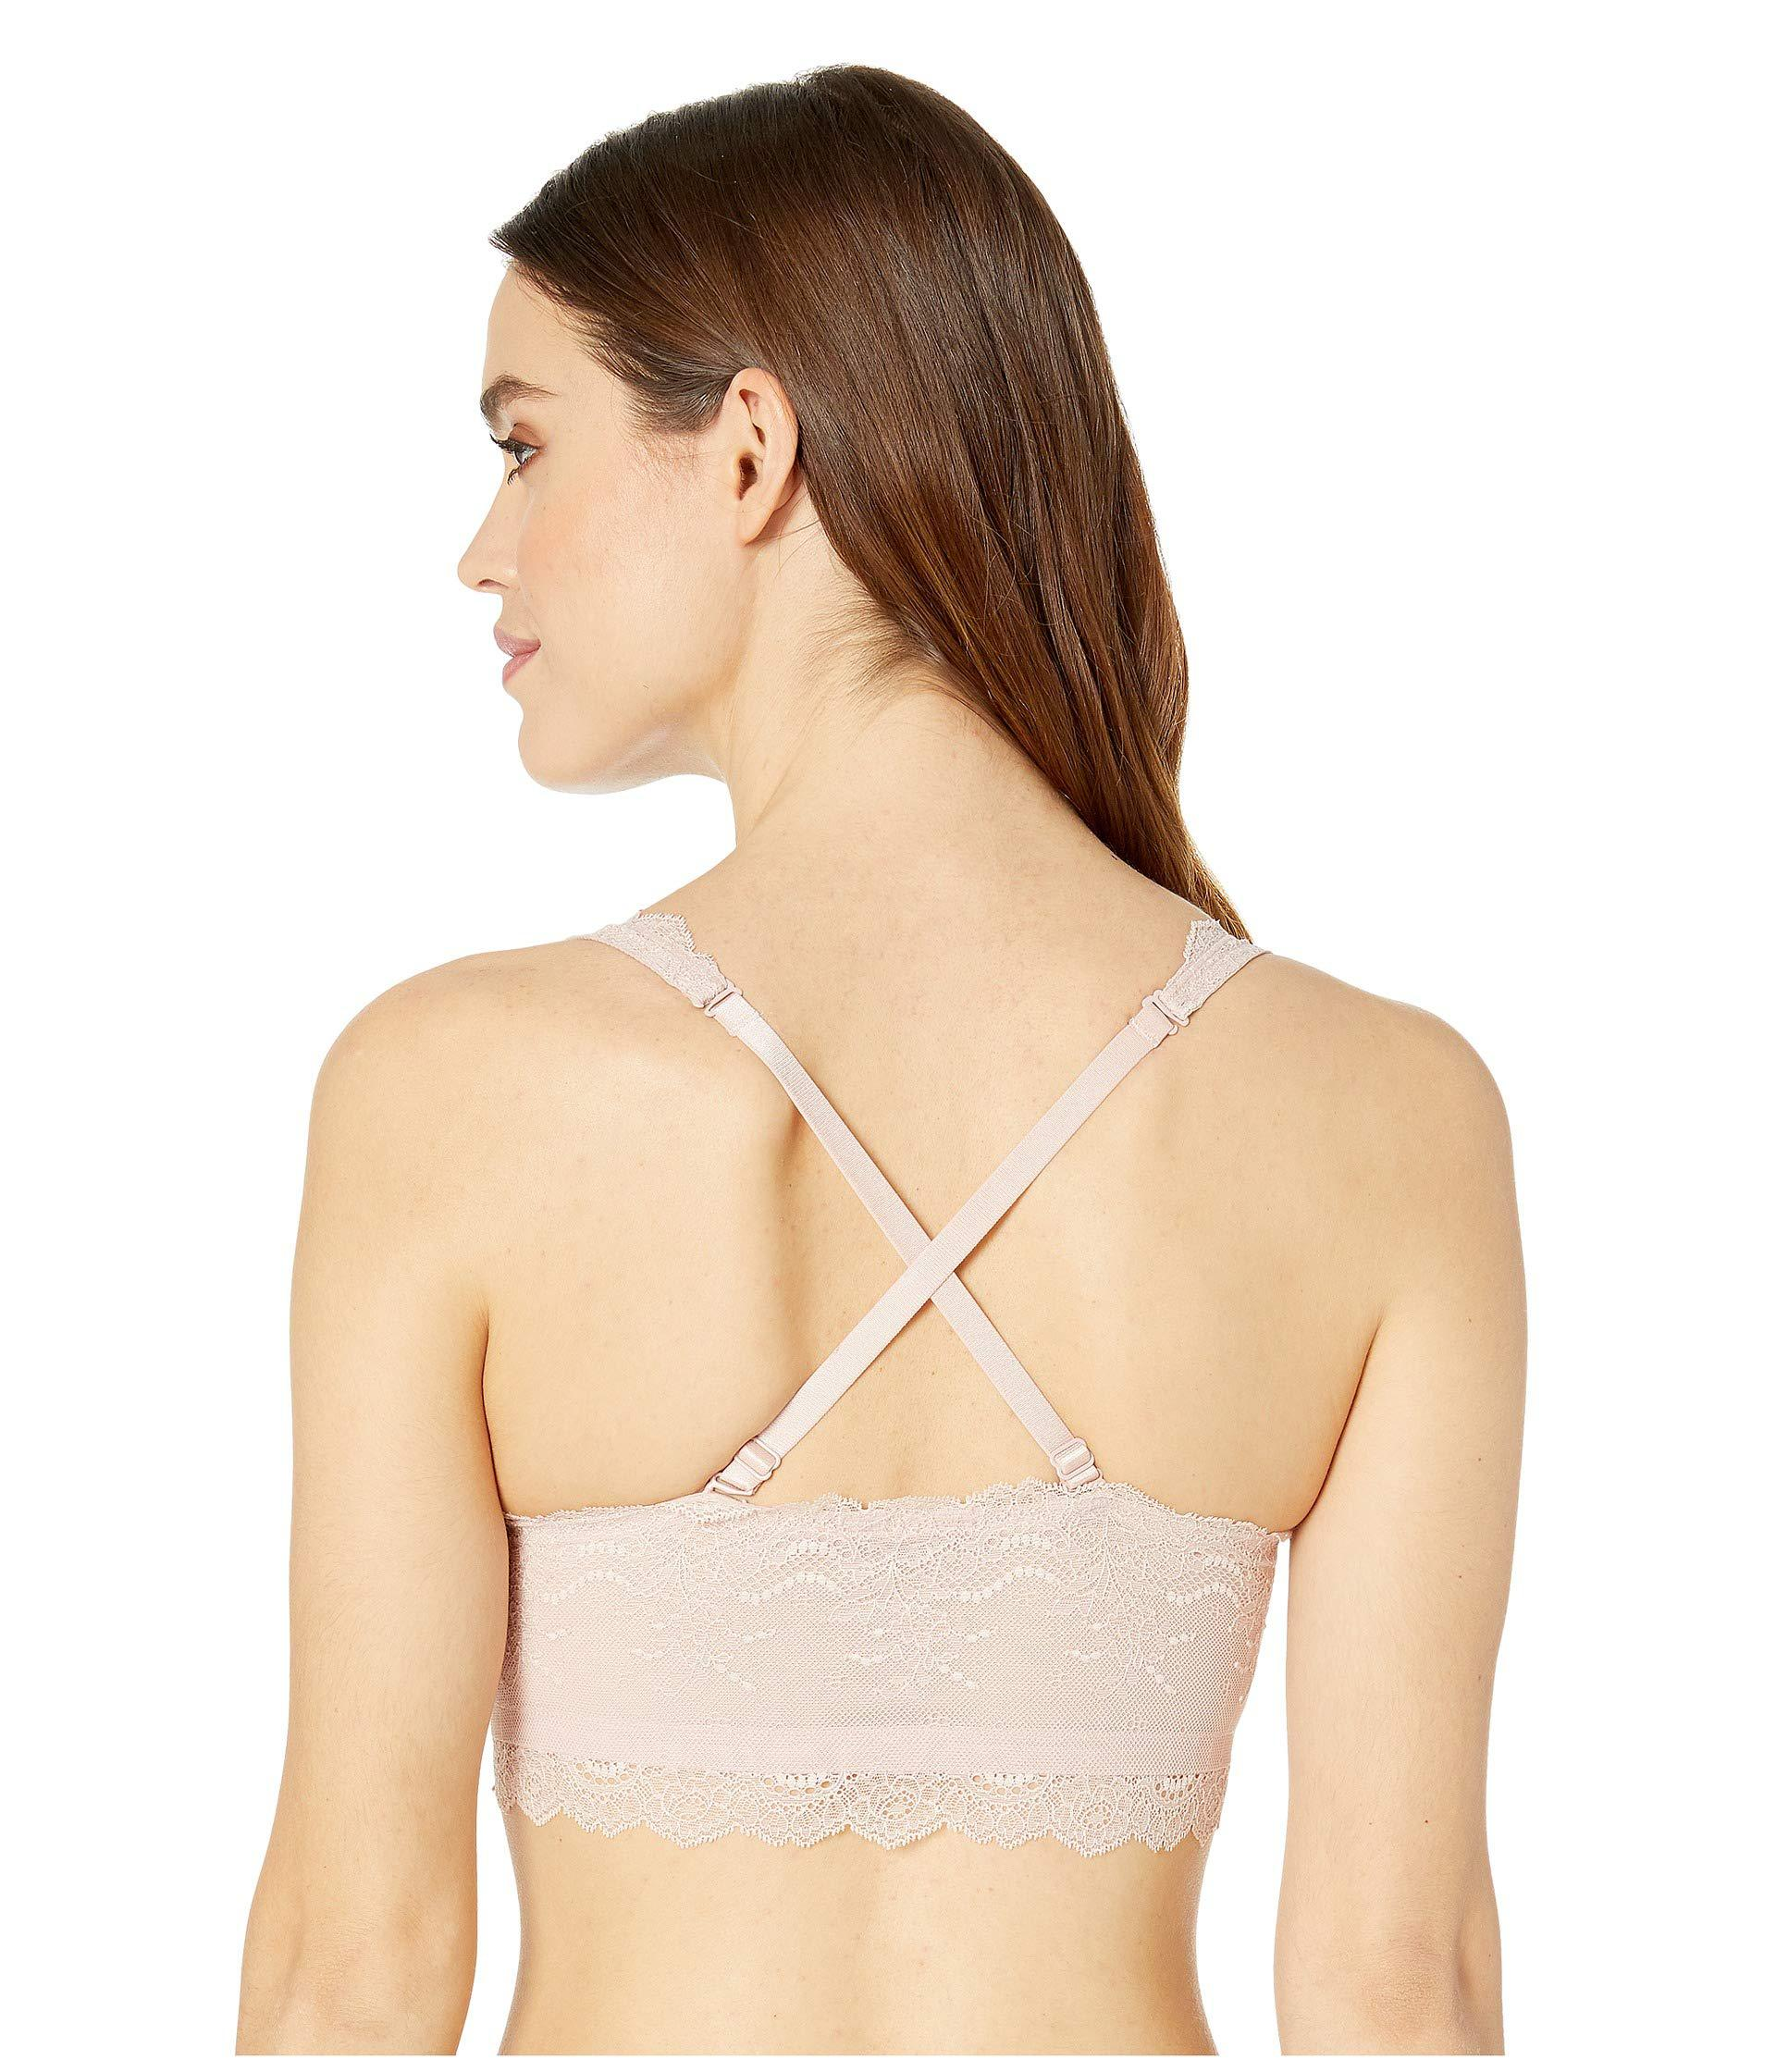 f48d233de86 Lyst - Spanx Four Play Lace Bra in Natural